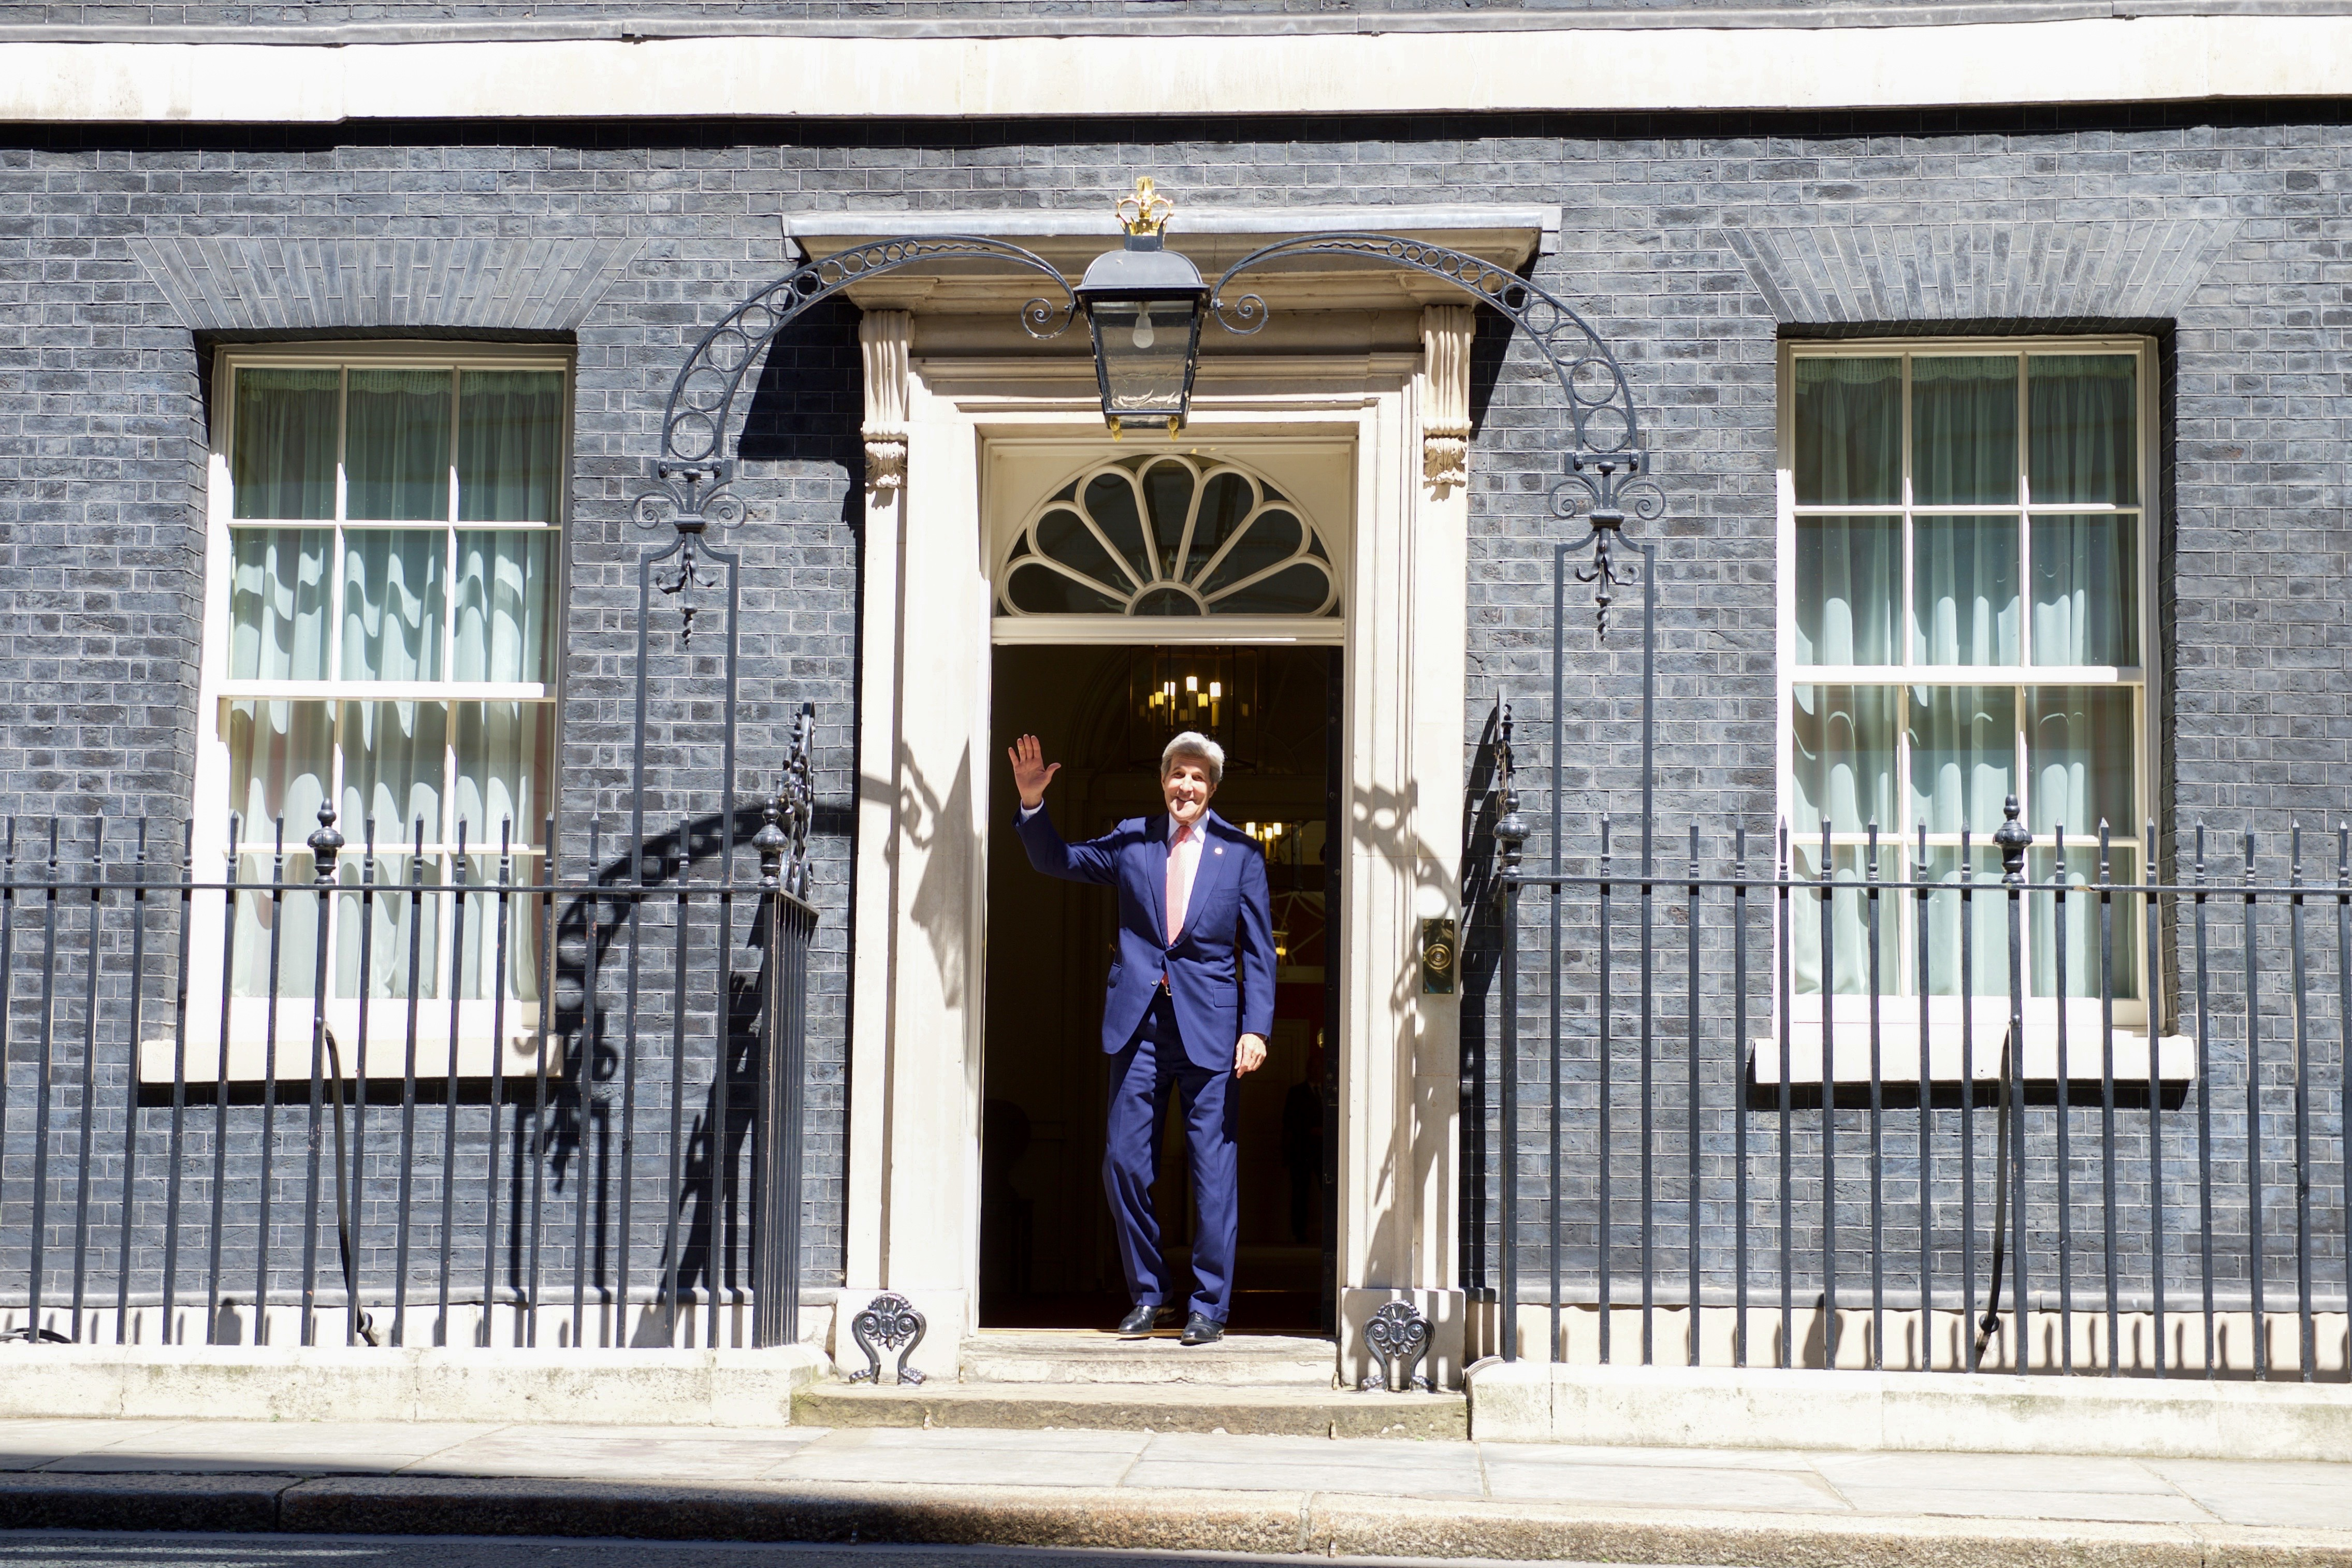 FileSecretary Kerry Waves to Photographers Before Entering the Doorway of No. 10 Downing & File:Secretary Kerry Waves to Photographers Before Entering the ...